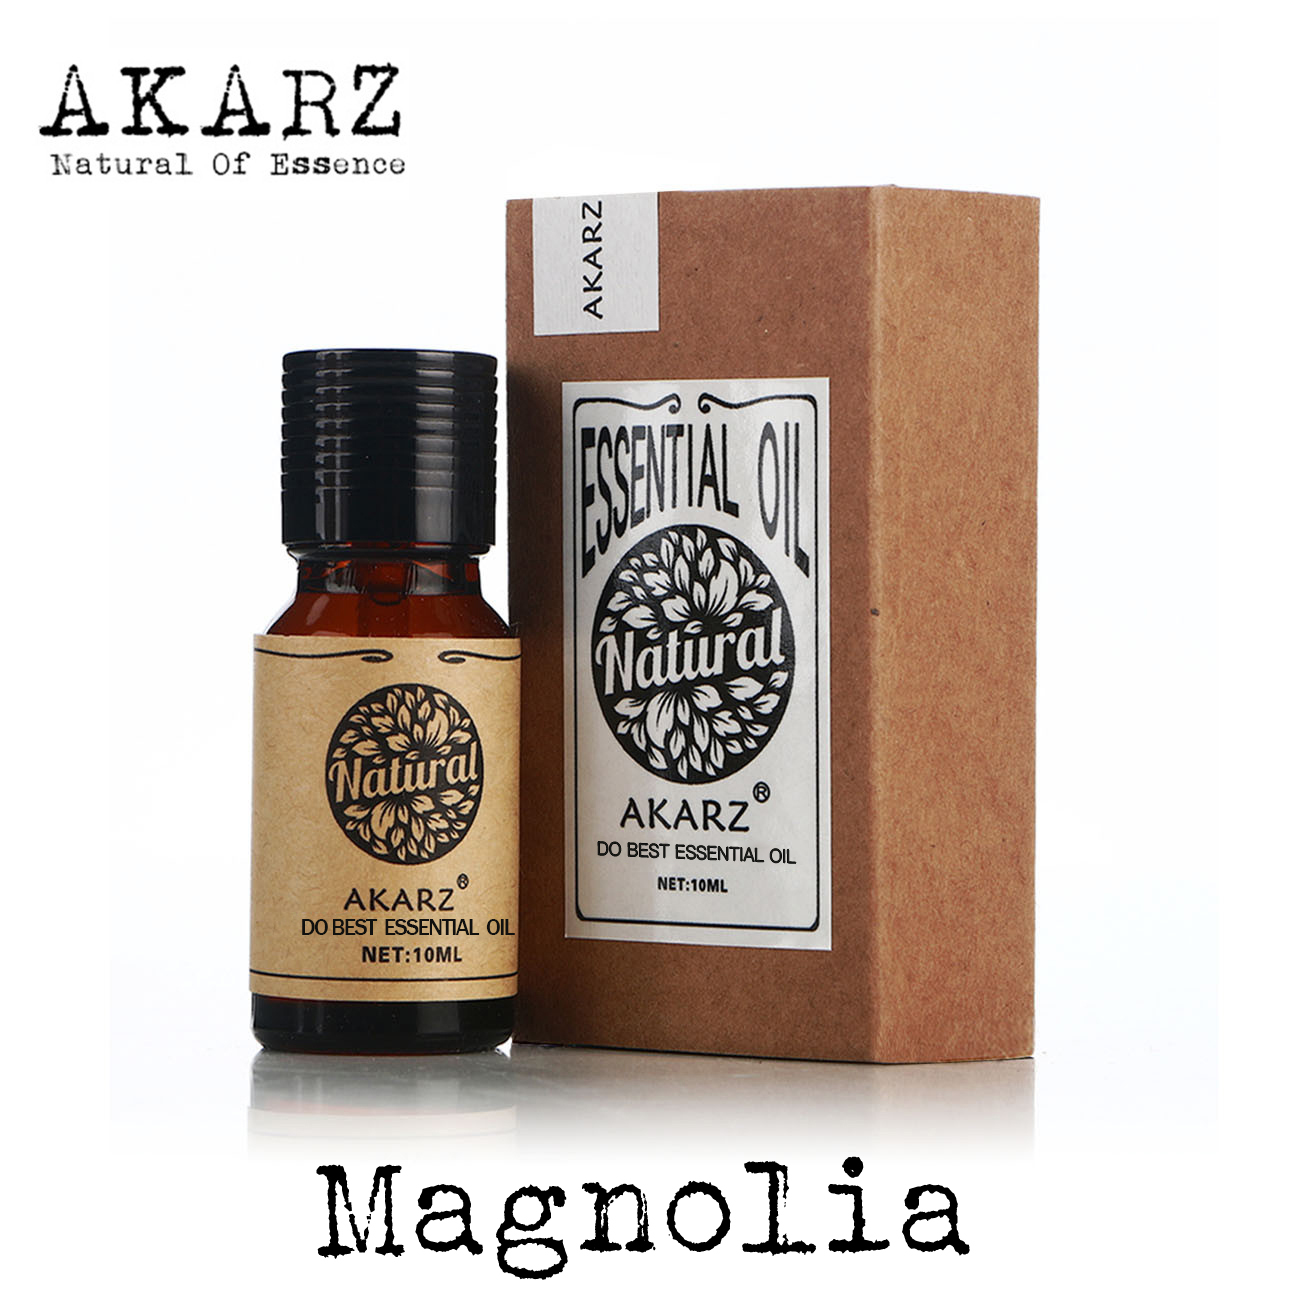 AKARZ Famous brand natural Magnolia oil Mind stabilization Anti aging Remove stain Skin regeneration Magnolia essential oilAKARZ Famous brand natural Magnolia oil Mind stabilization Anti aging Remove stain Skin regeneration Magnolia essential oil